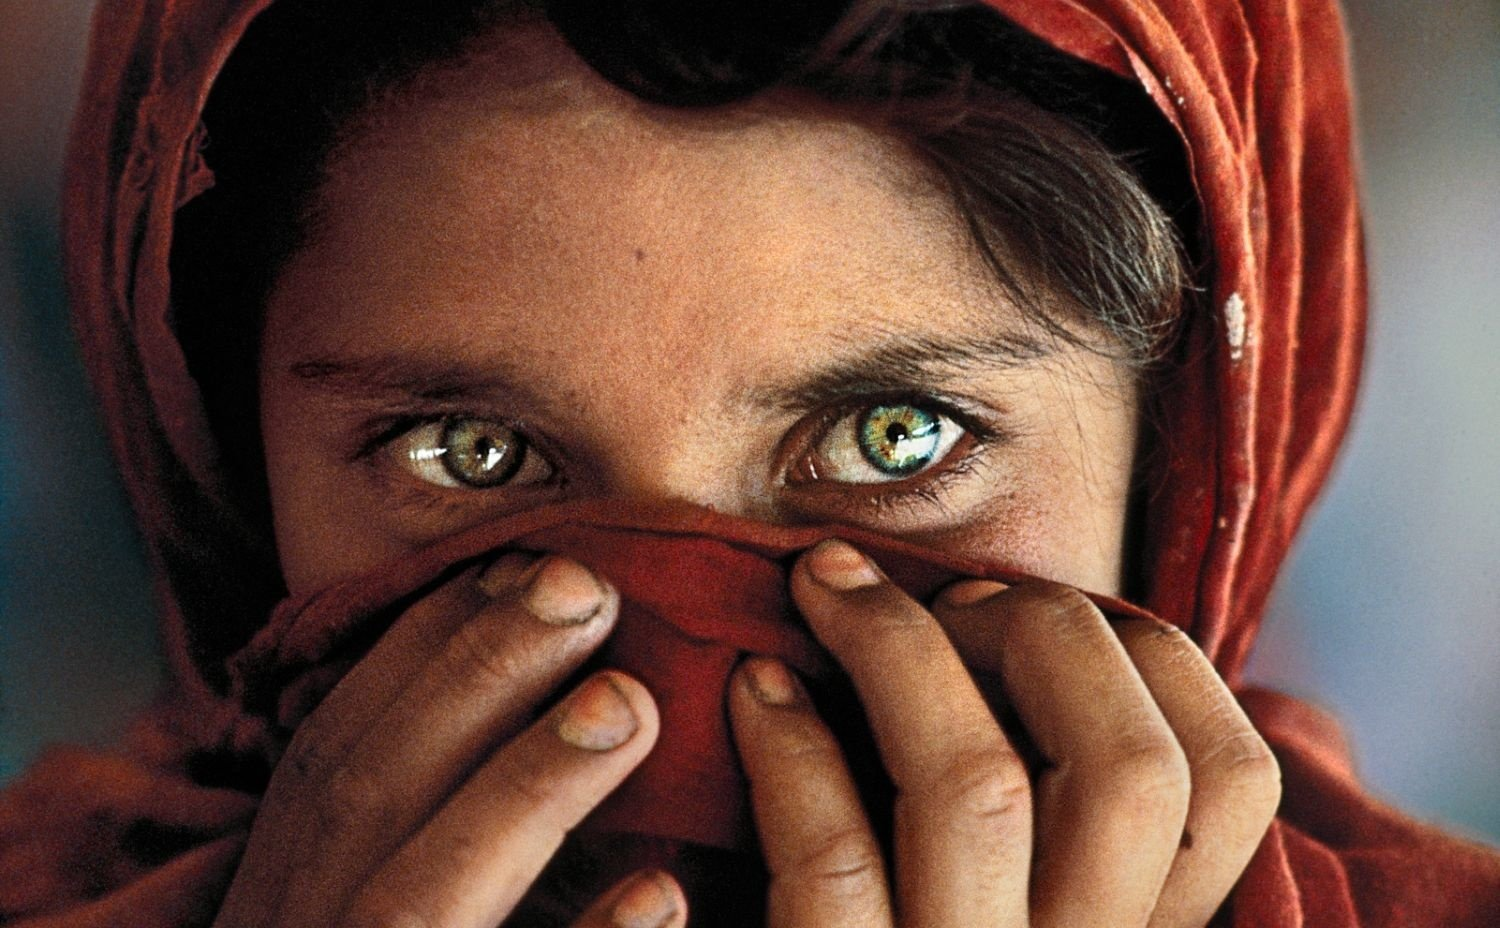 SteveMcCurry - La ragazza afghana